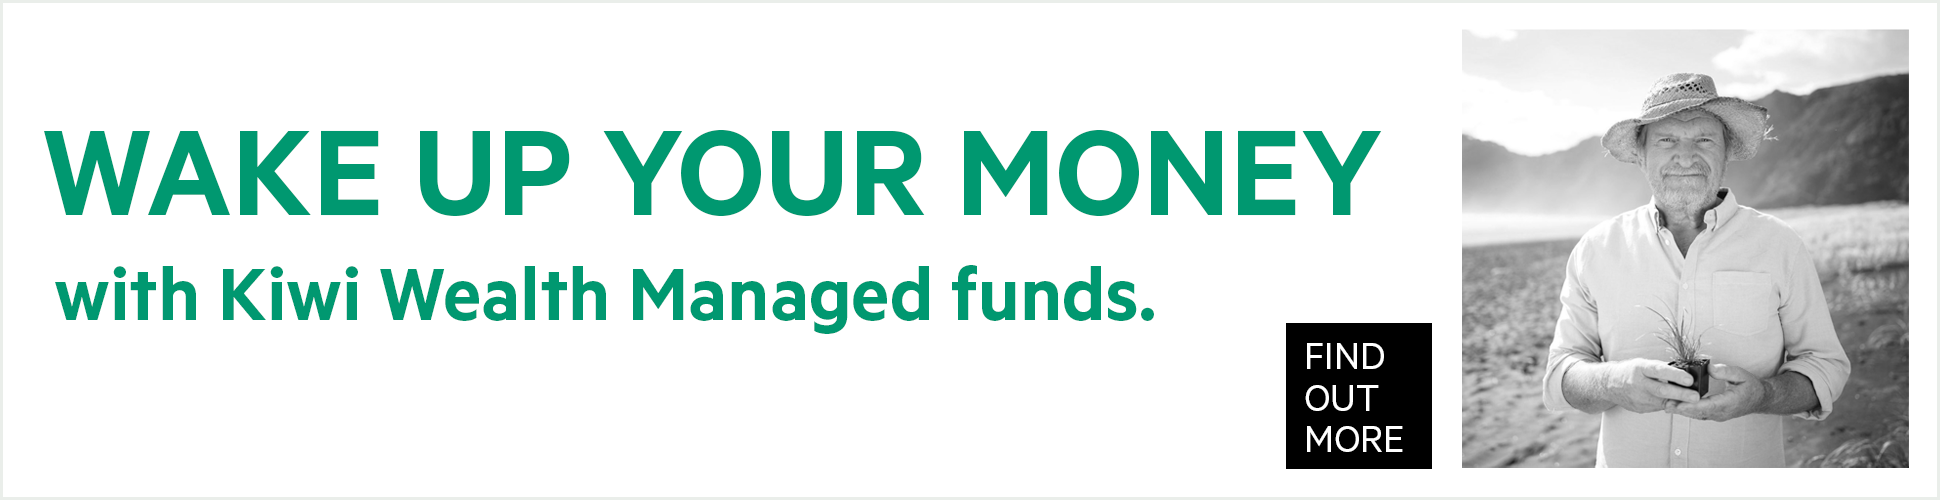 kiwi wealth managed funds product banner - landscape